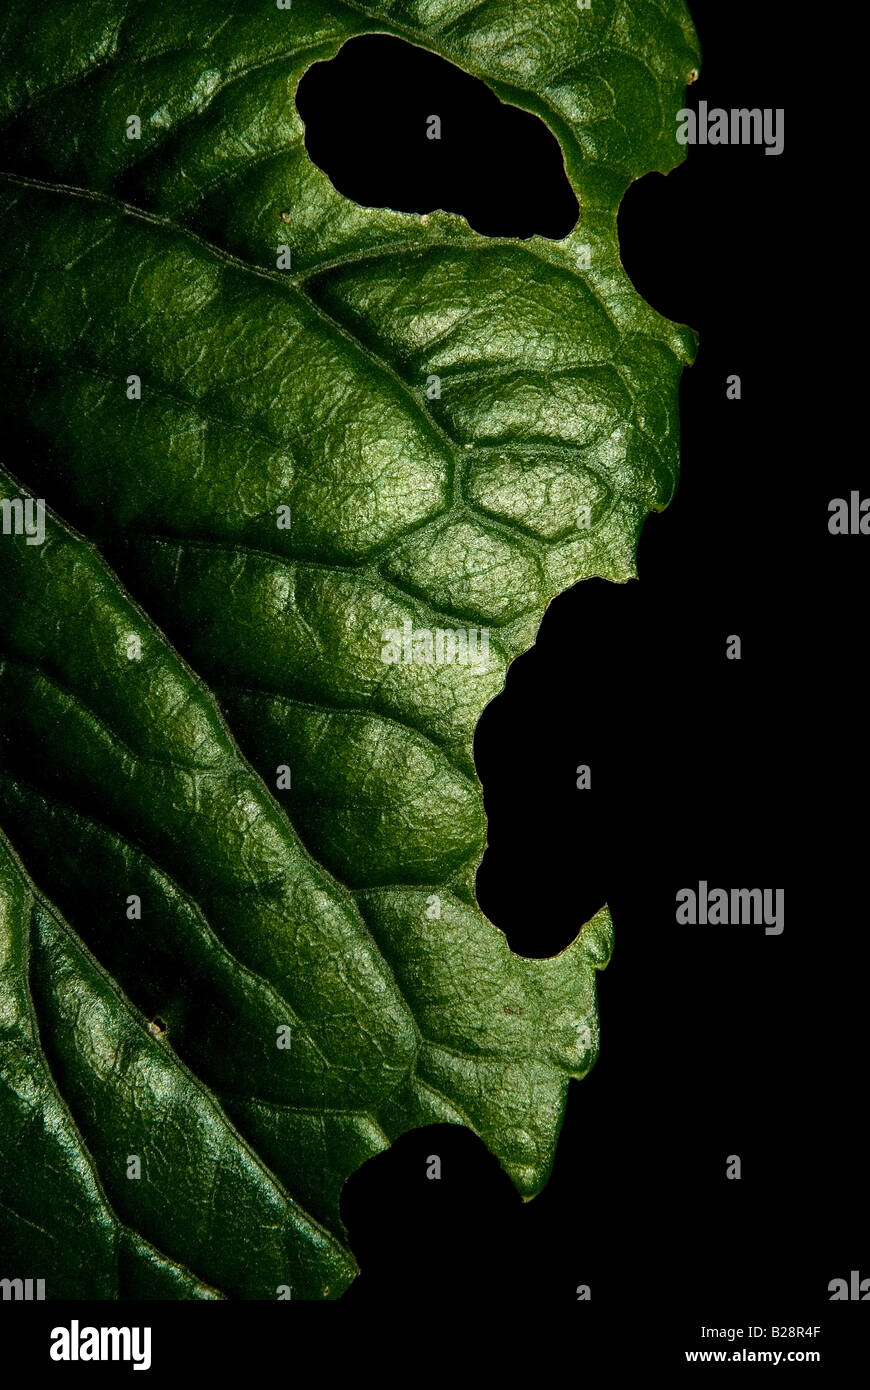 Green plant. Leaf face. - Stock Image